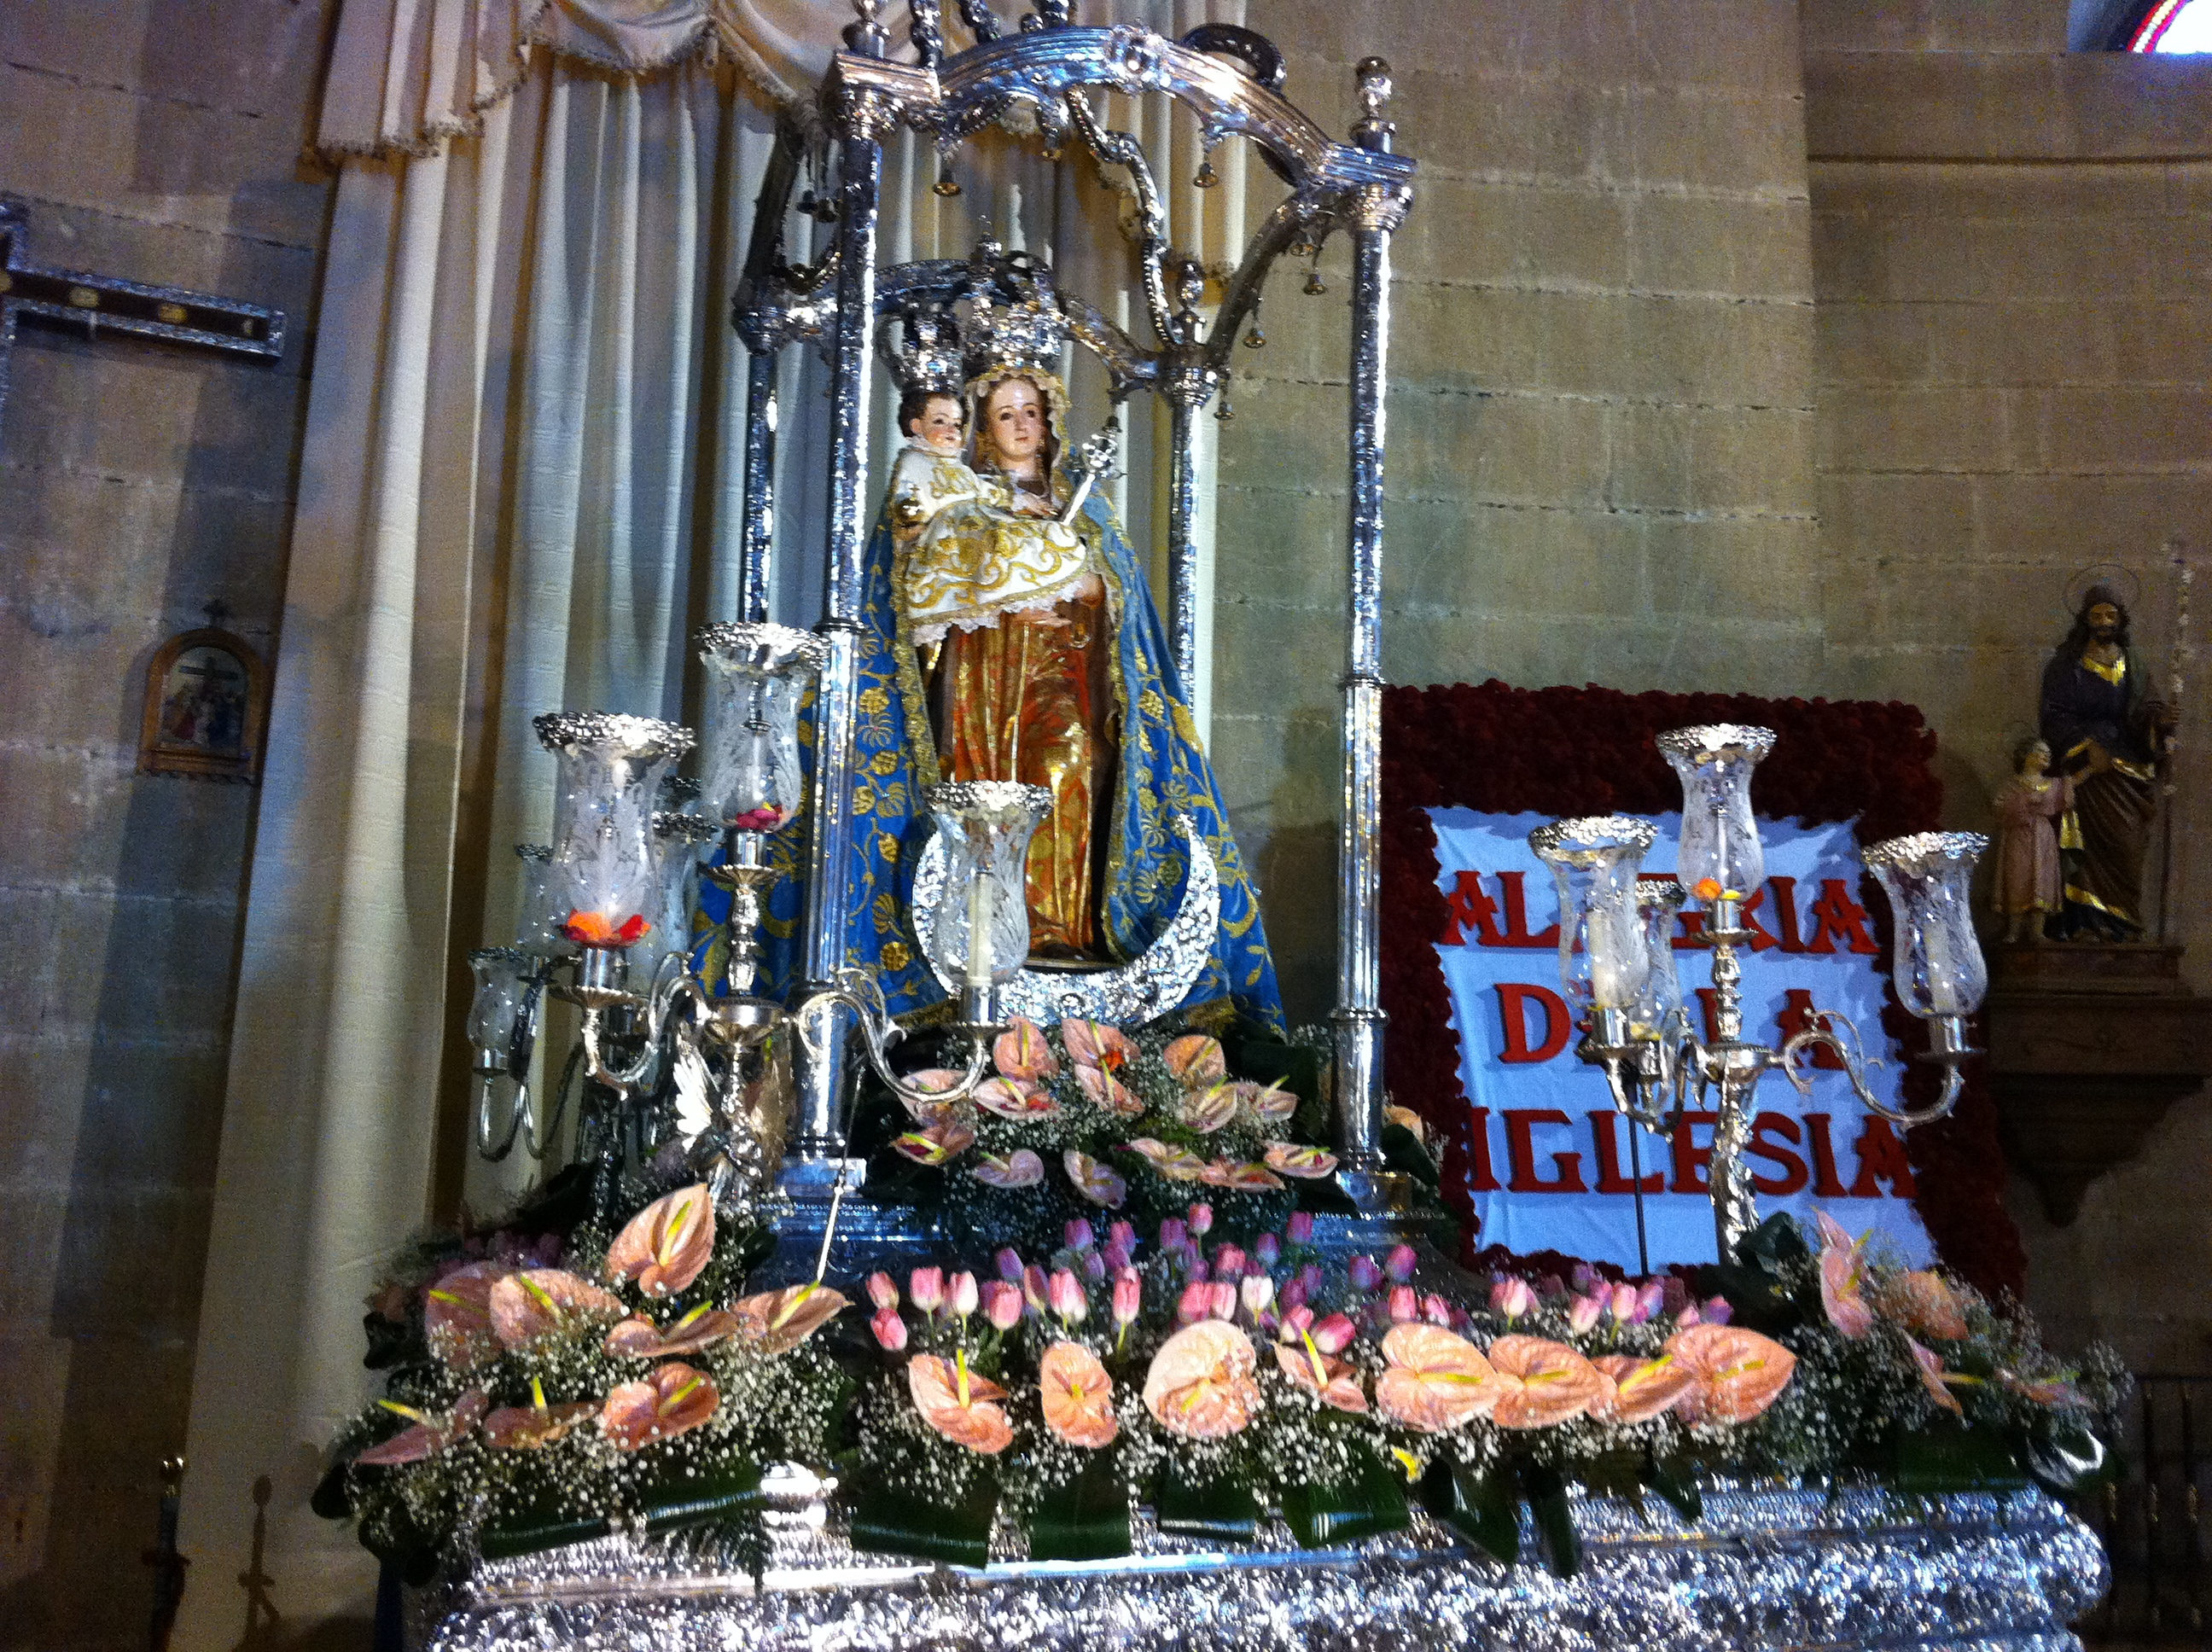 Traditions in Southern Spain